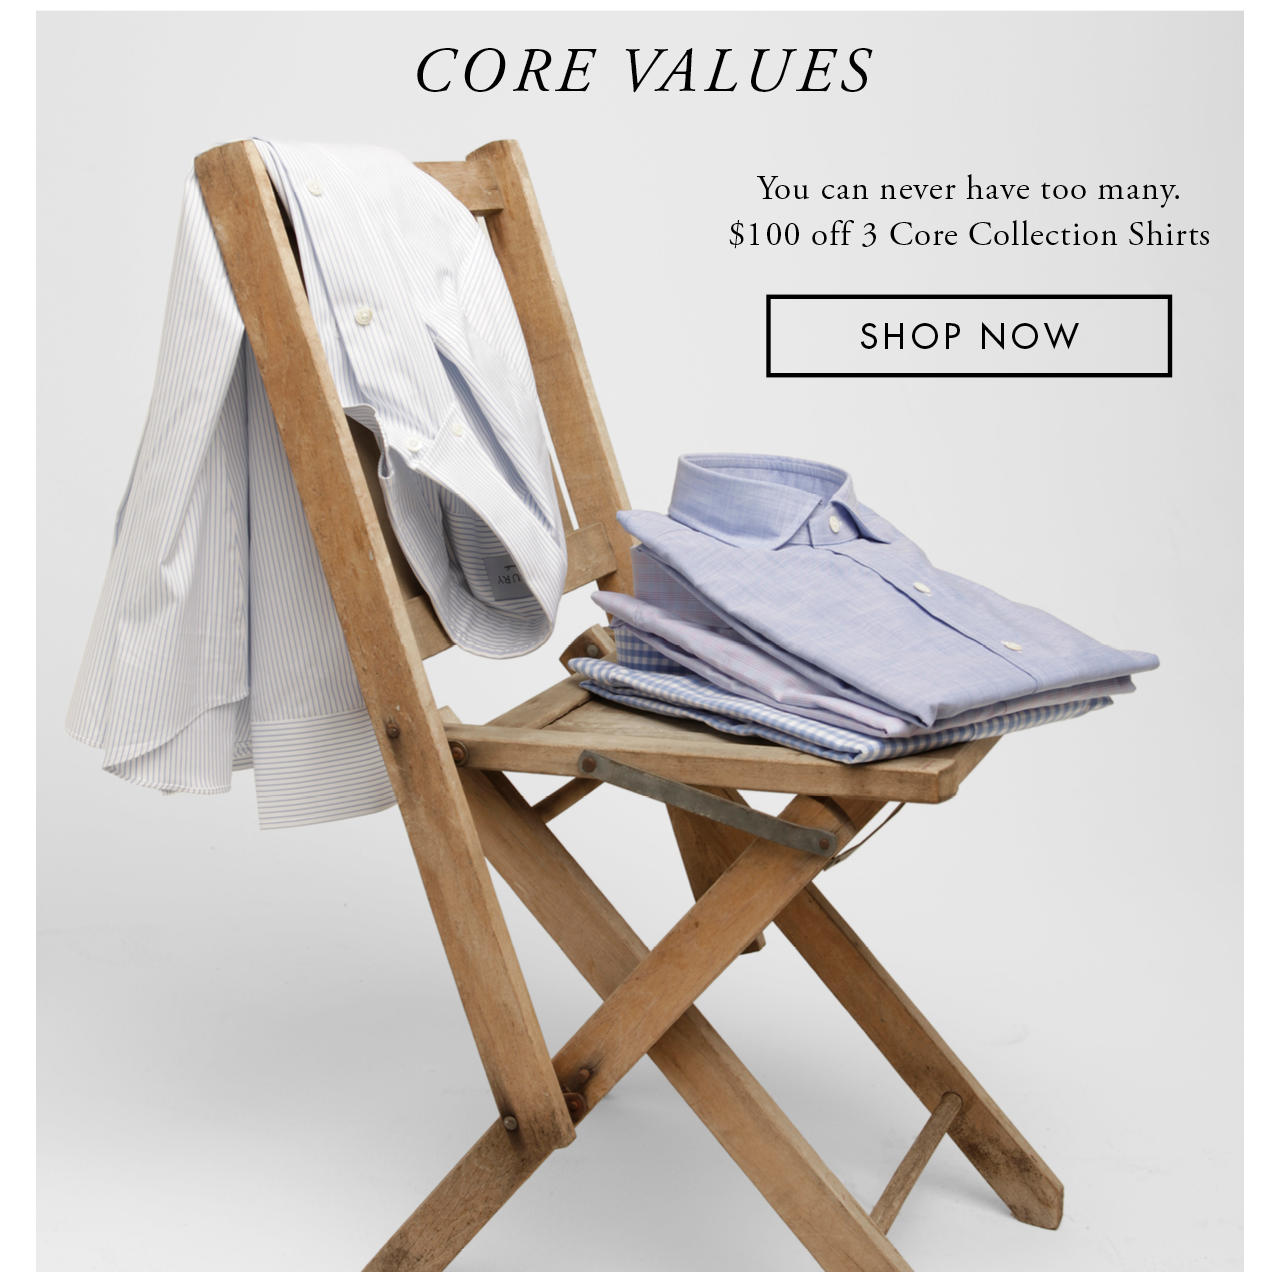 Take $100 off 3 Core Collection Shirts